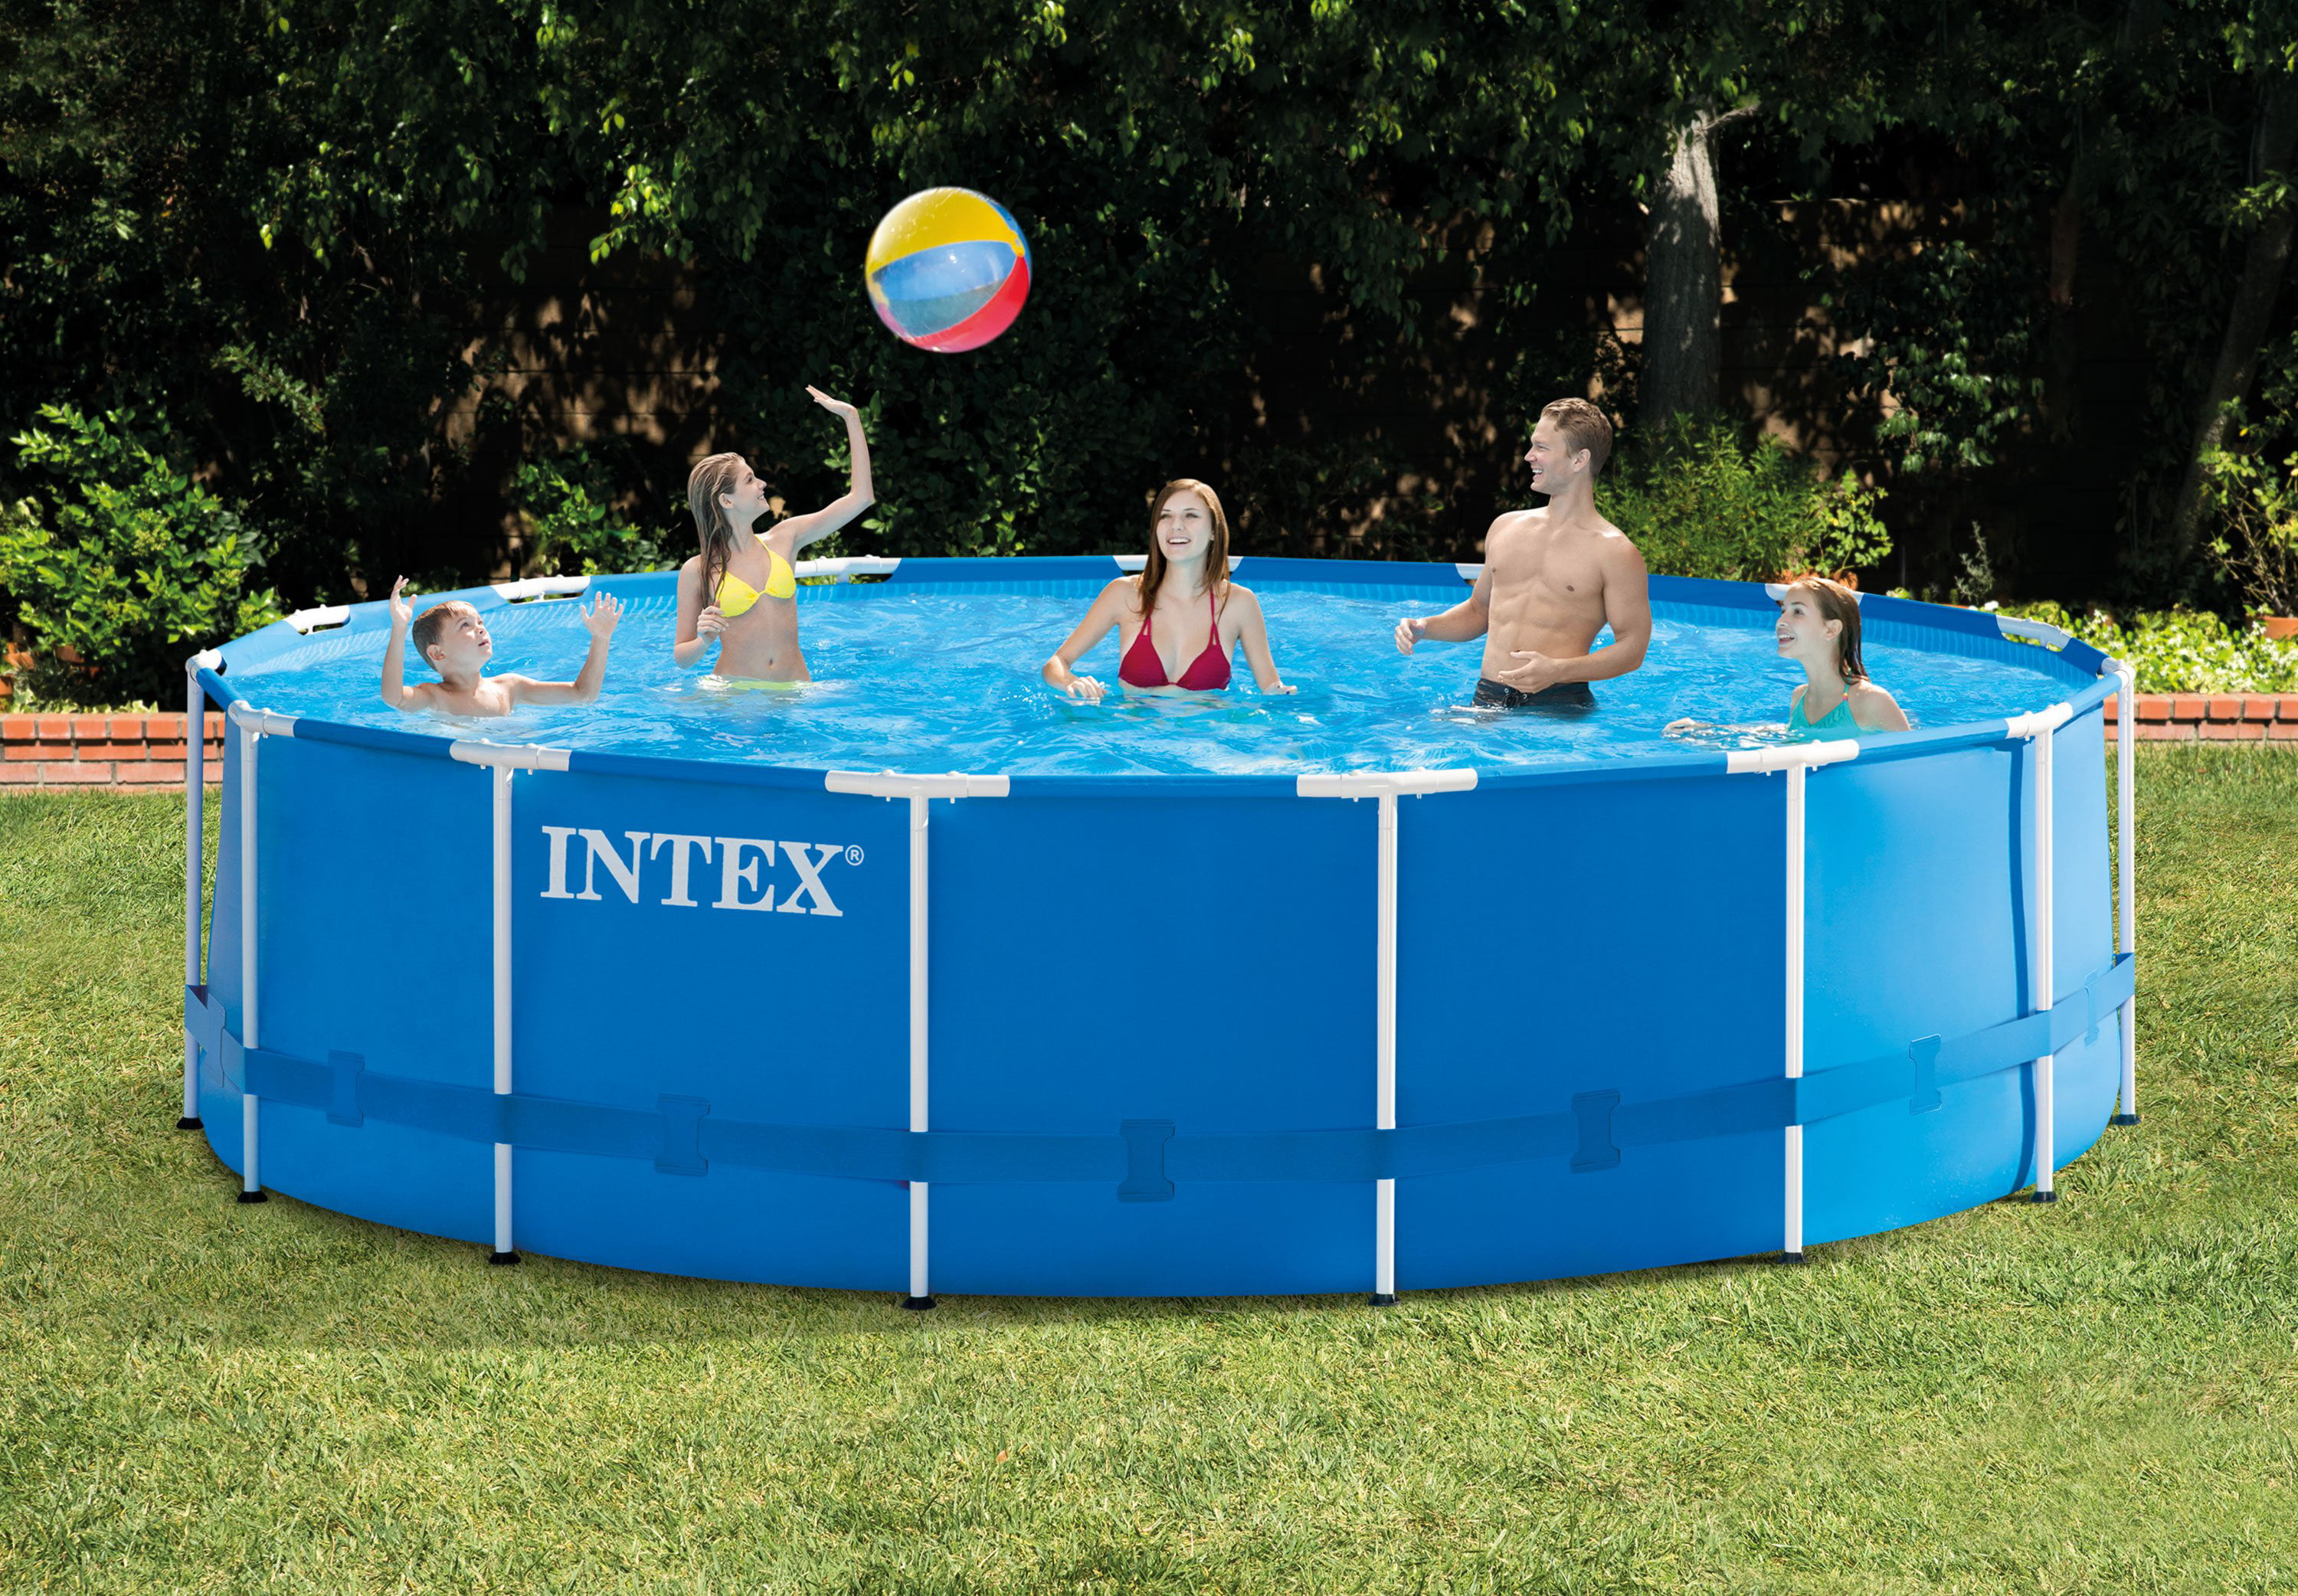 "Intex 15' x 48"" Metal Frame Above Ground Pool with Filter Pump by INTEX TRADING LTD"